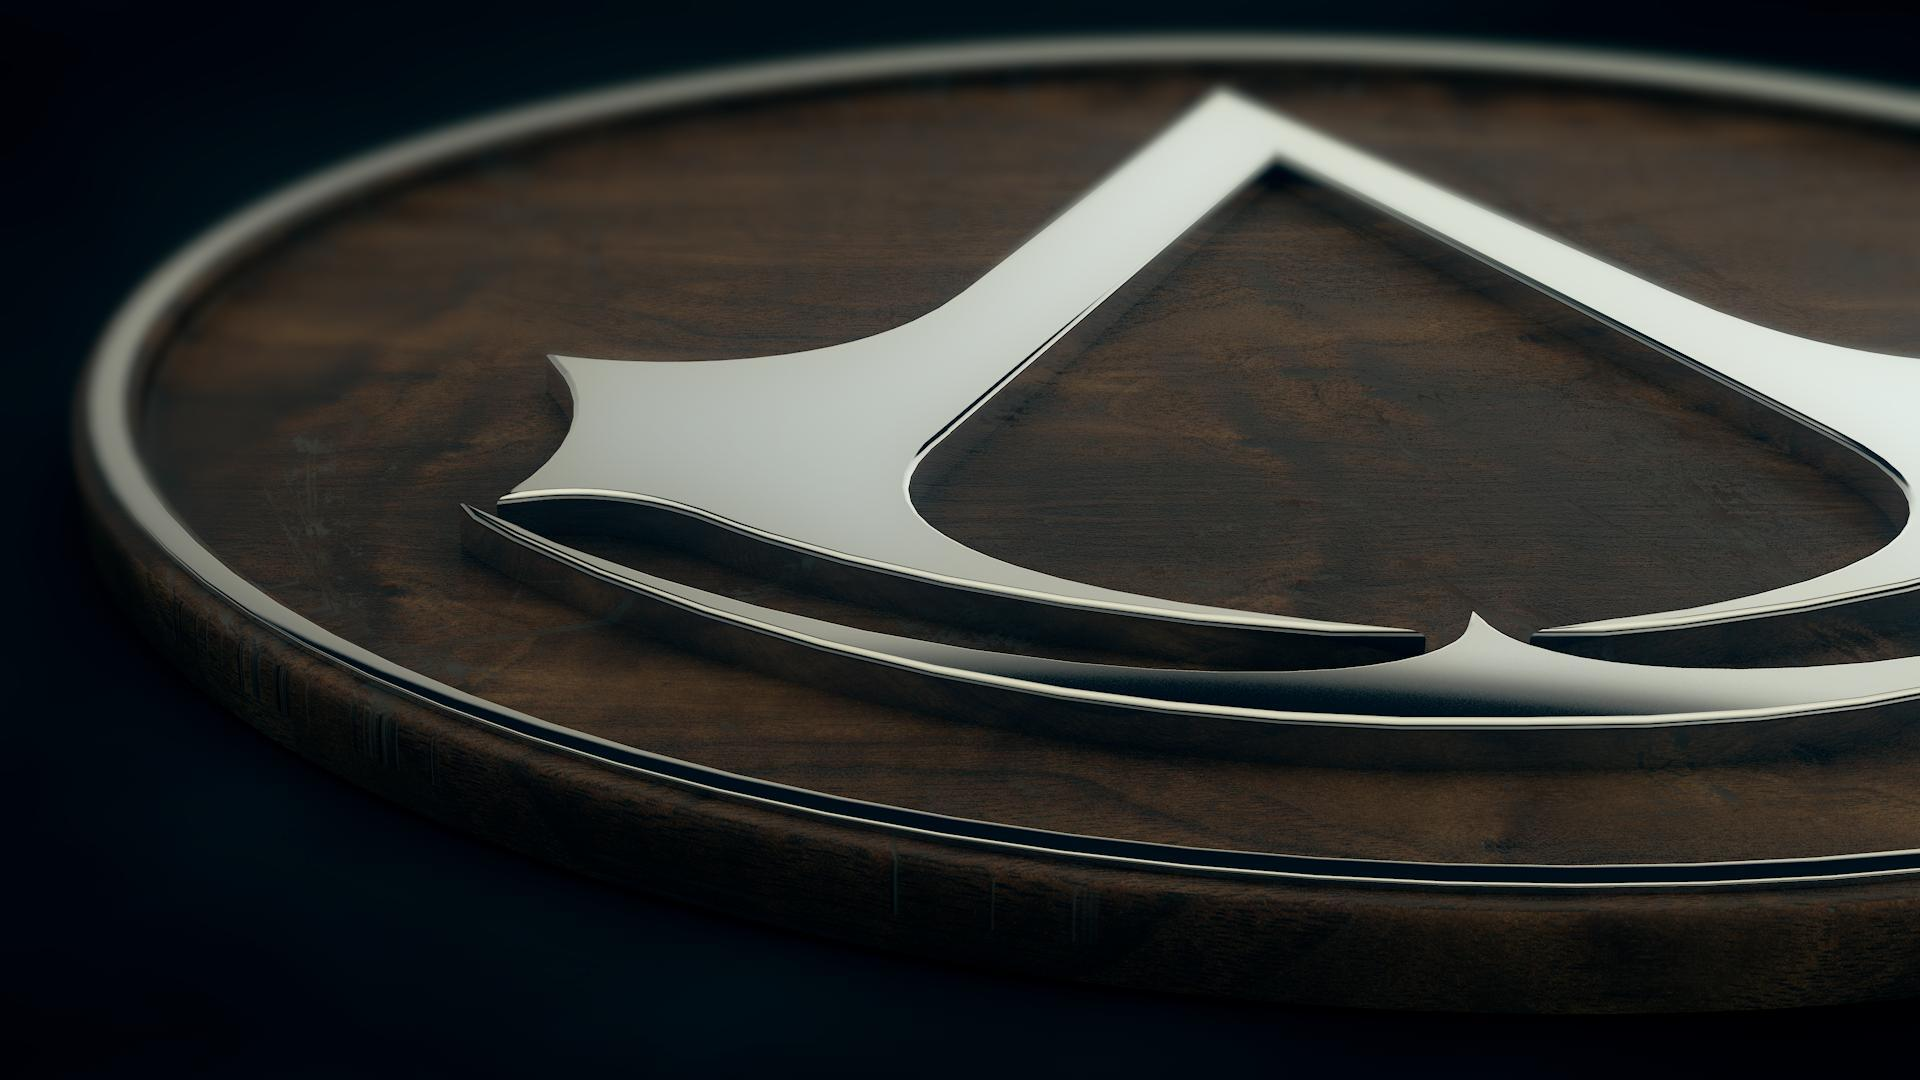 Assassin'-s Creed Symbol Desktop Wallpaper - WallpaperSafari